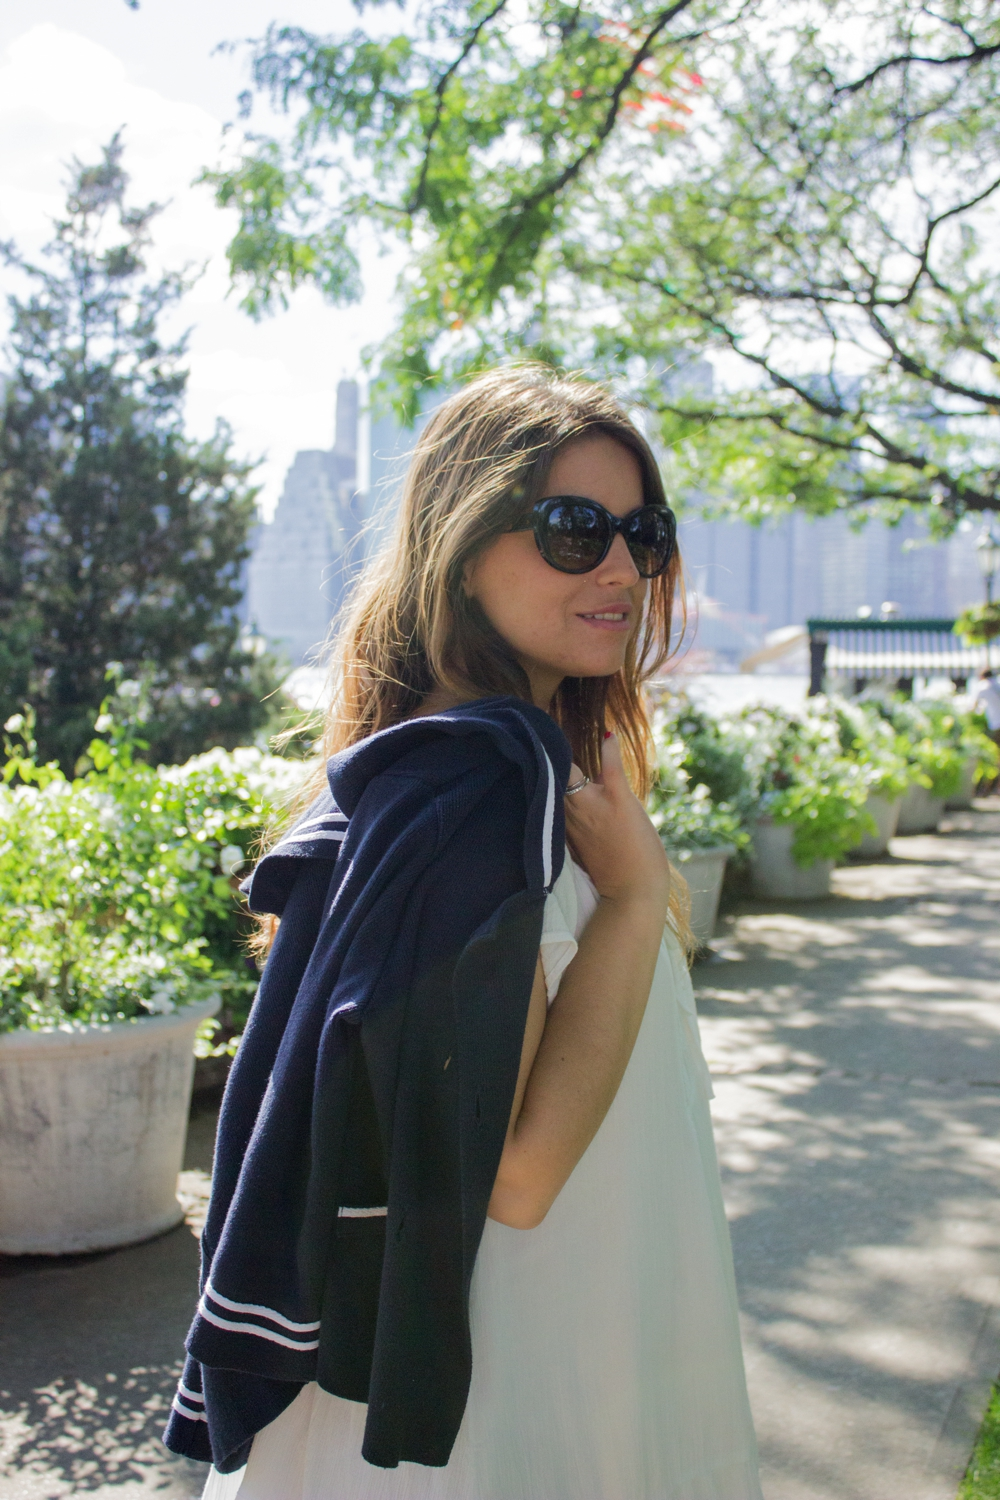 new-york-travels-summer-made-in-style-loreto-gordo-48